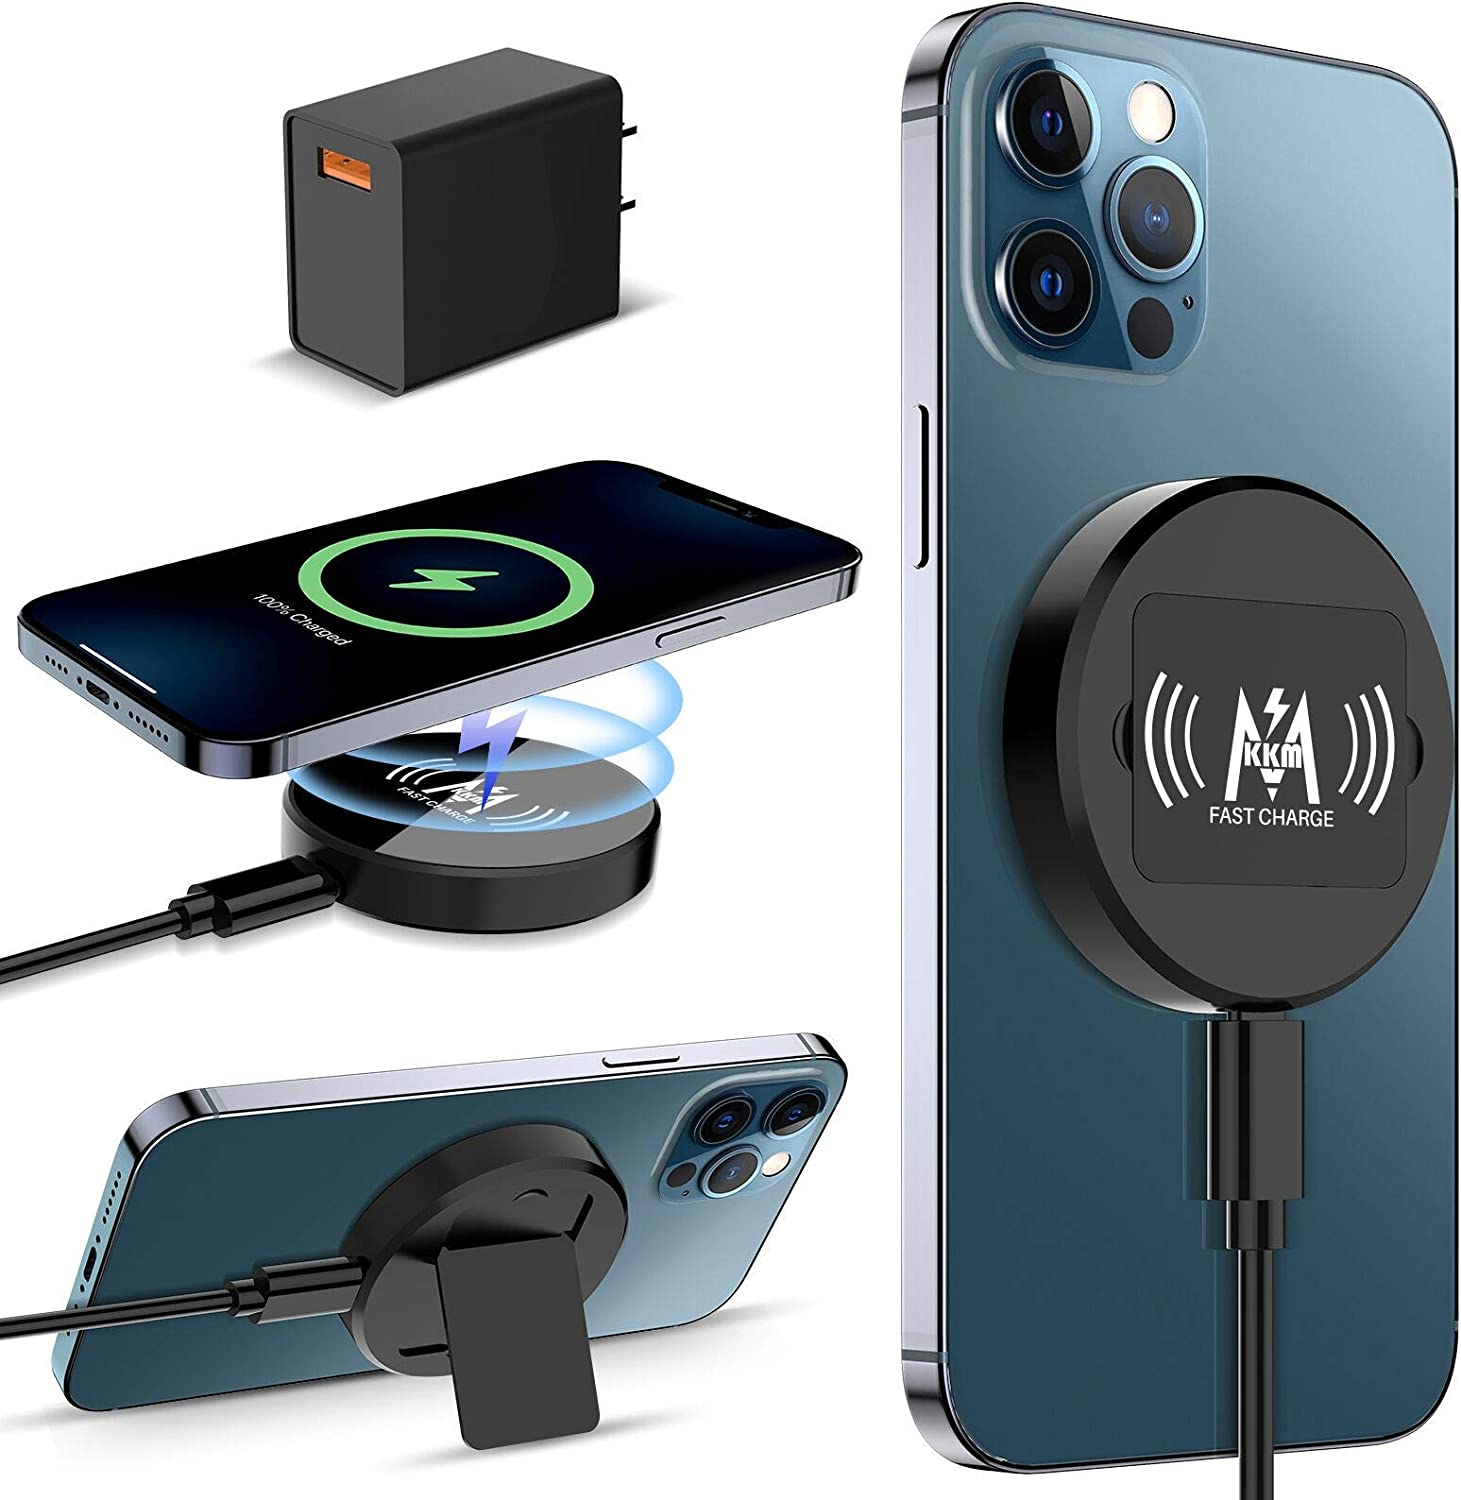 KKM Magnetic Wireless Charger, Compatible with MagSafe Charger, 15W Fast Charging Pad for iPhone 12/12 Pro/12 Pro Max /12 Mini AirPods Pro (QC 3.0 Adapter Included)